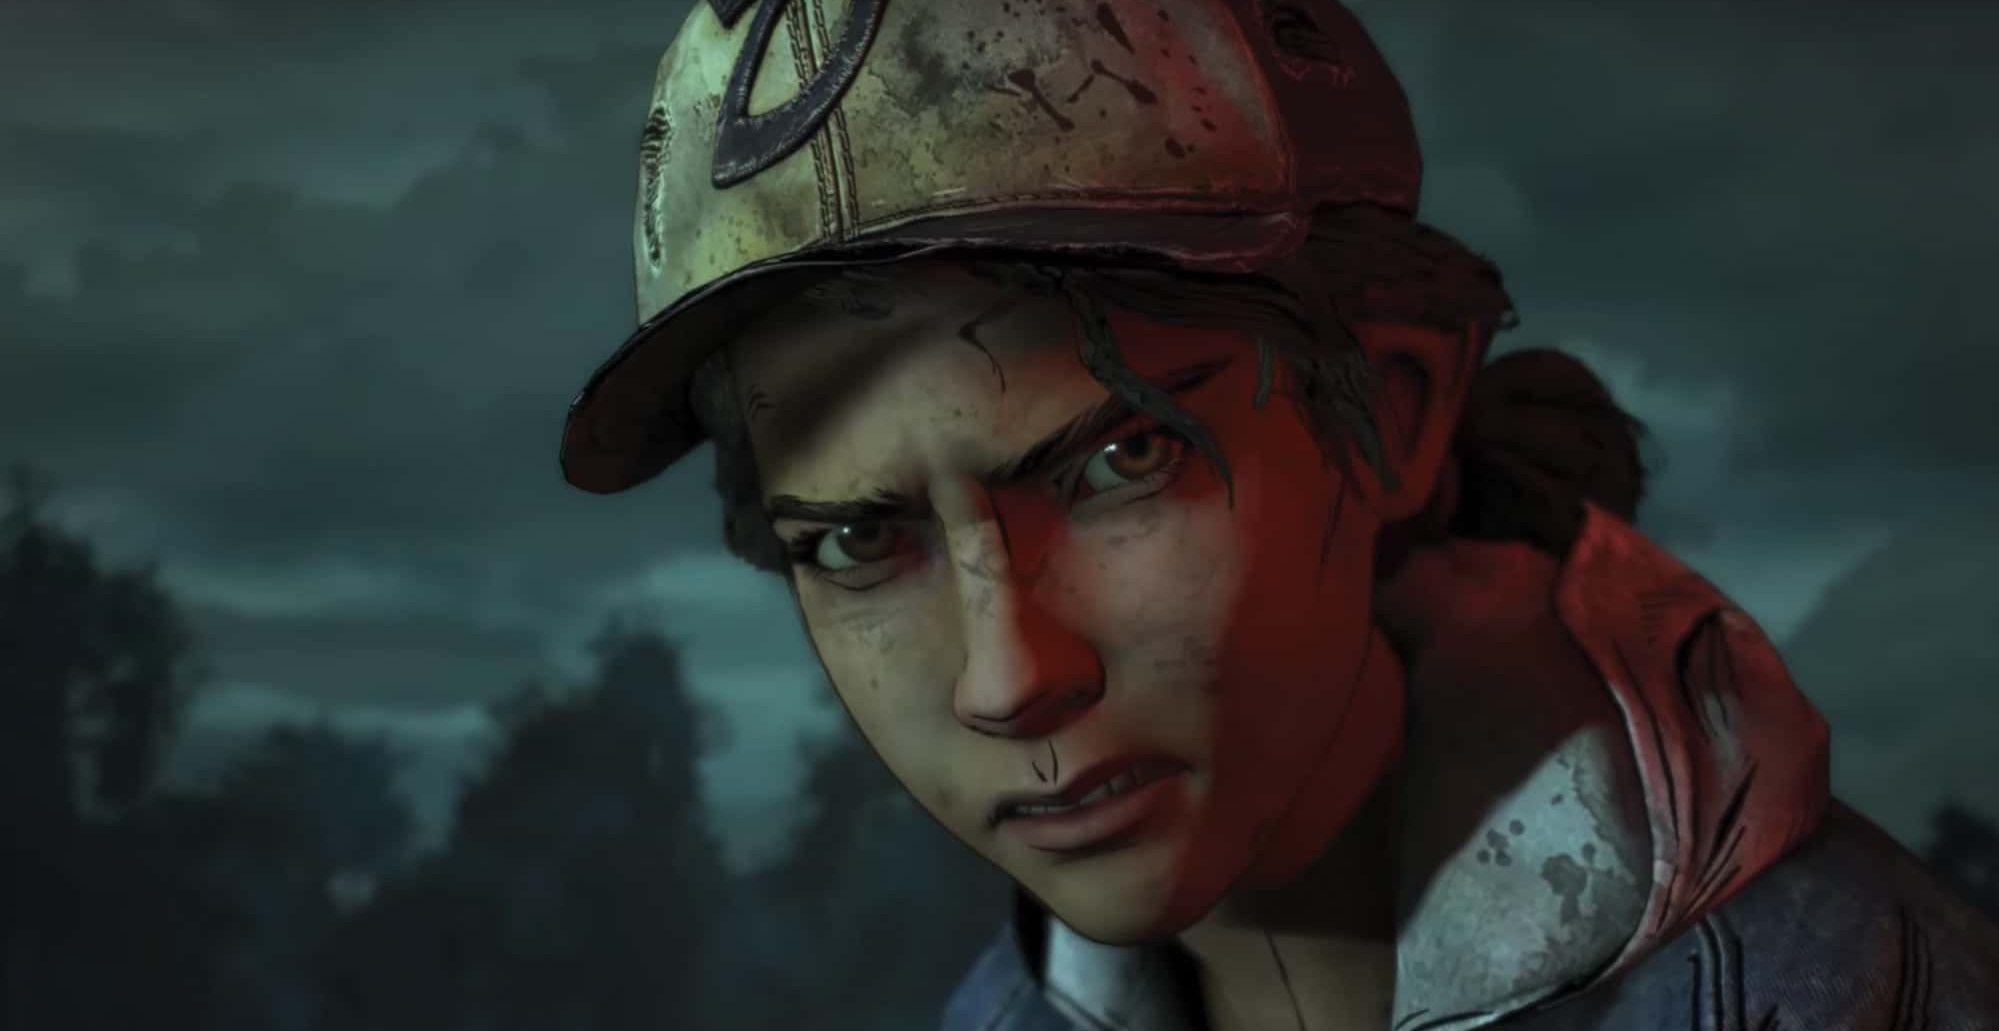 214619-Clementine-from-The-Walking-Dead.